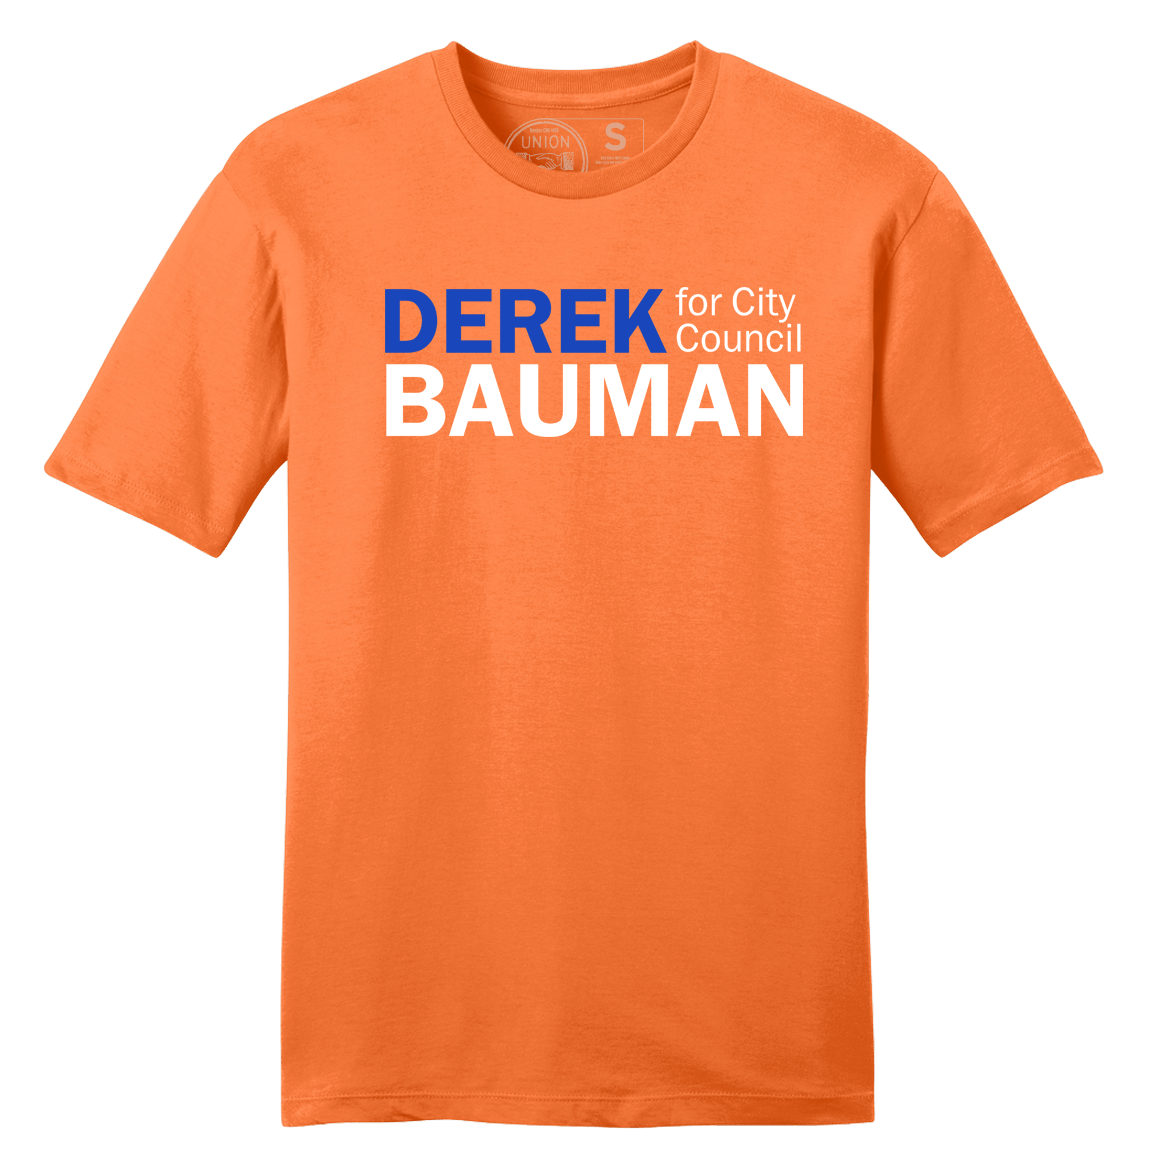 Derek Bauman For City Council Orange Tee Shirts unionstrongshirts